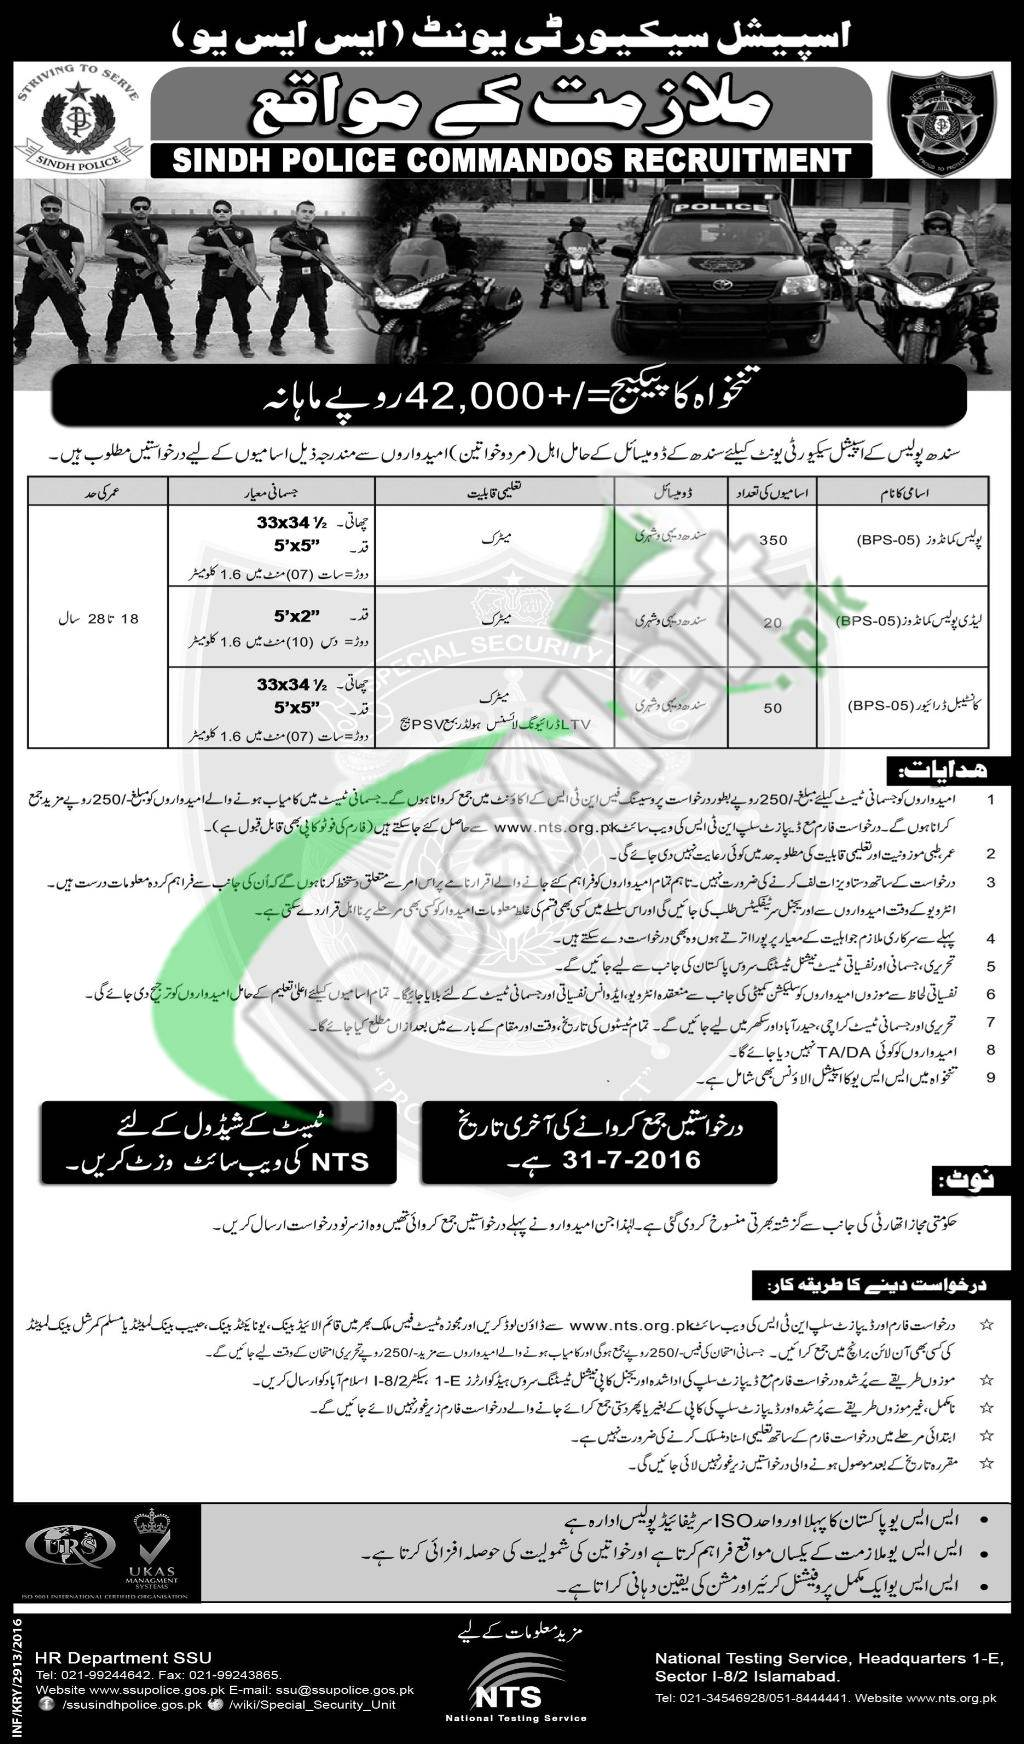 SSU Sindh Police Jobs 2016 Application Form Download NTS